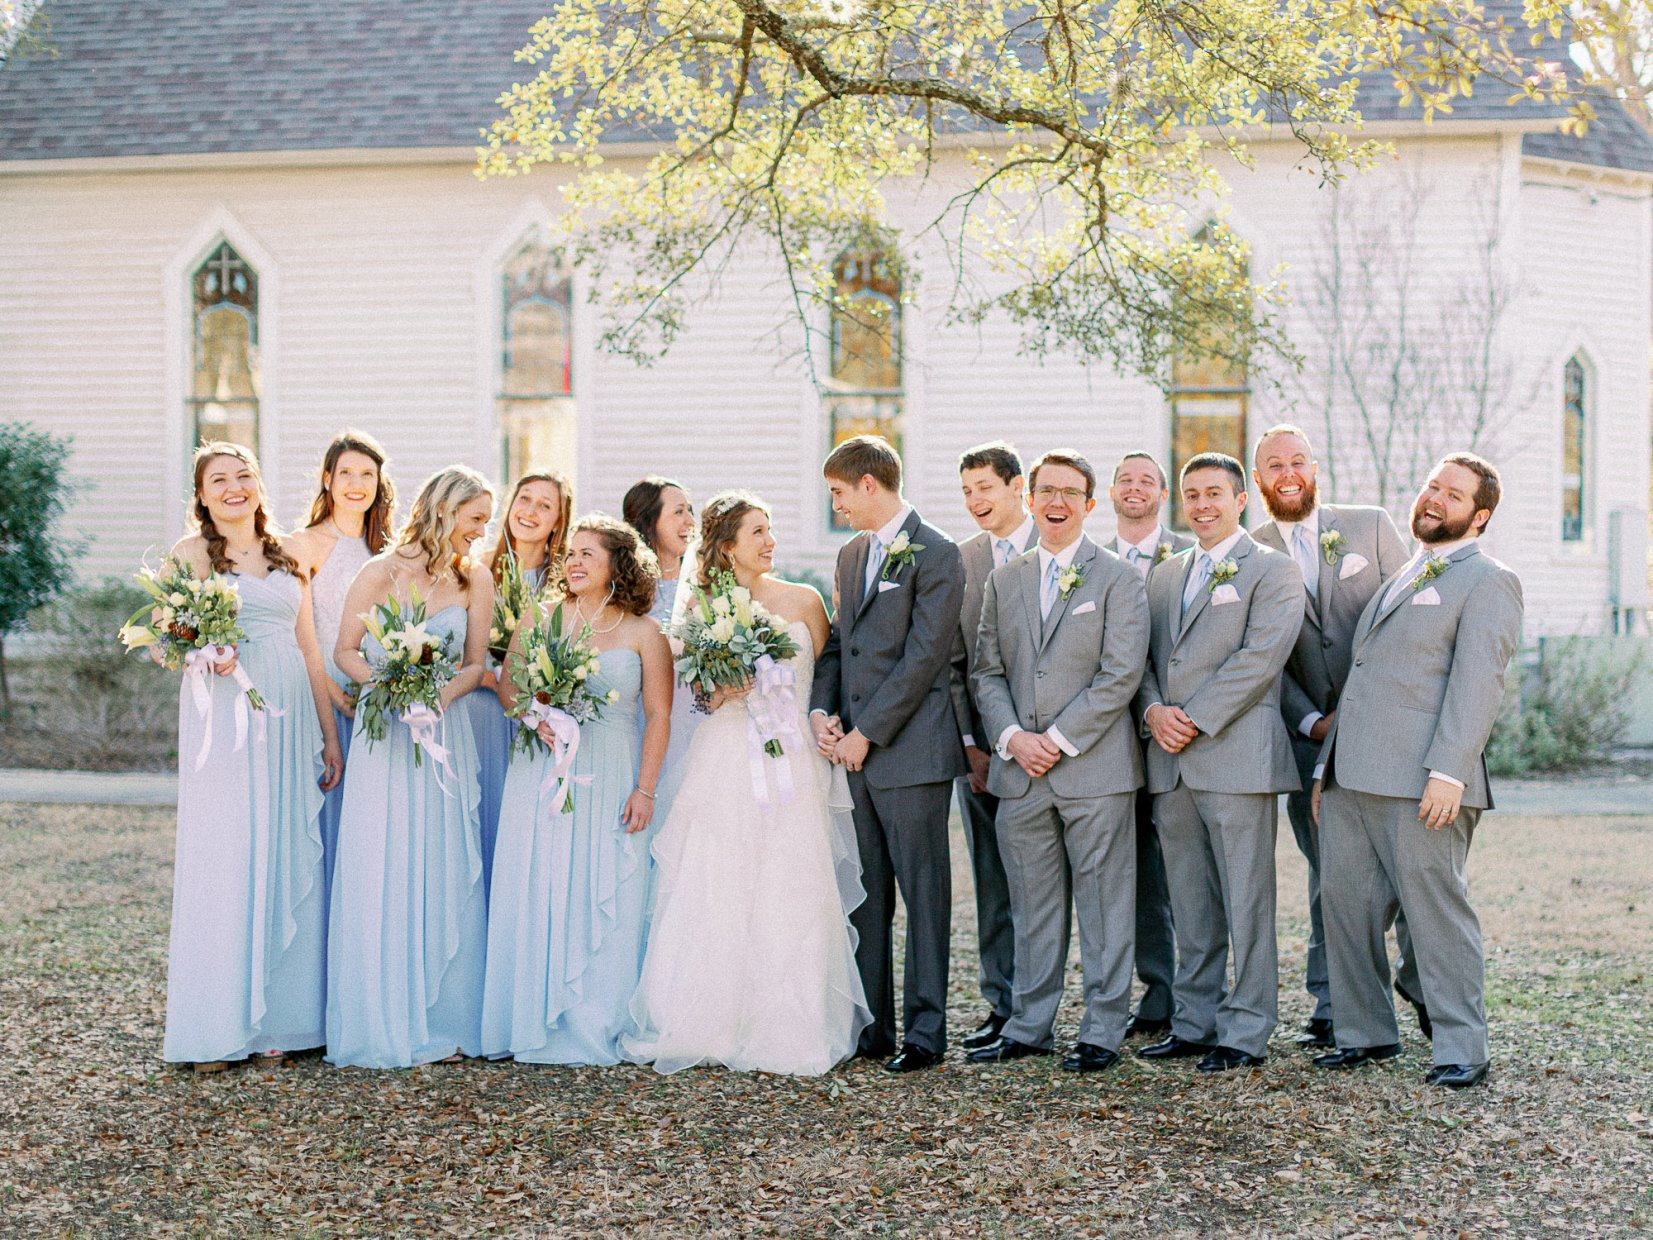 Laughing photo of wedding party wearing pastel blue colors in front of a church